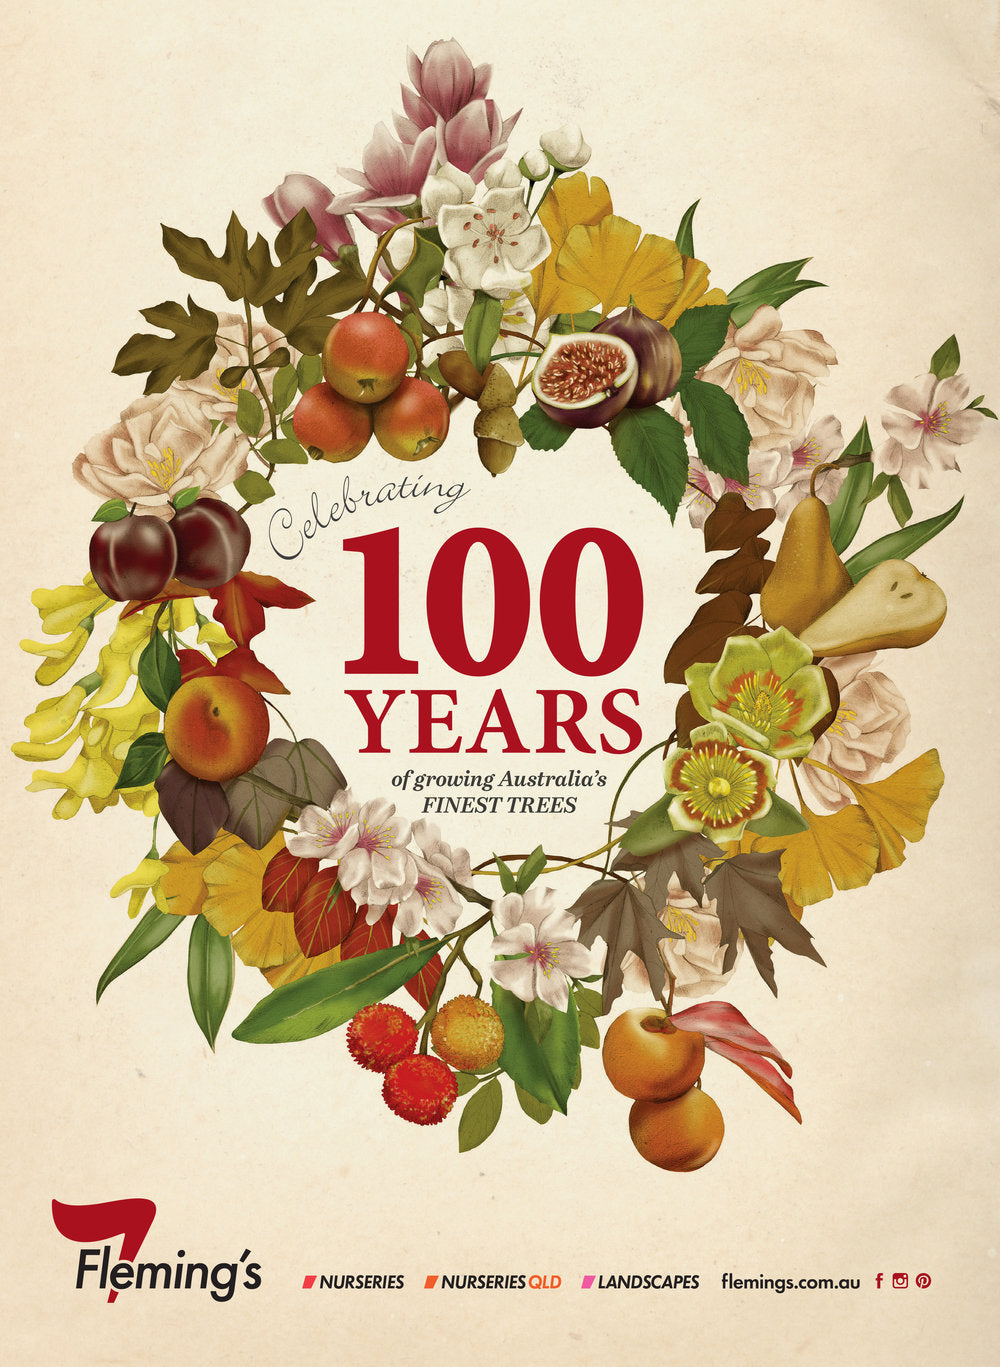 Fleming's Nursery 100 Year Anniversary wreath botanical illustration advertising by Melbourne based illustrator Kelly Thompson